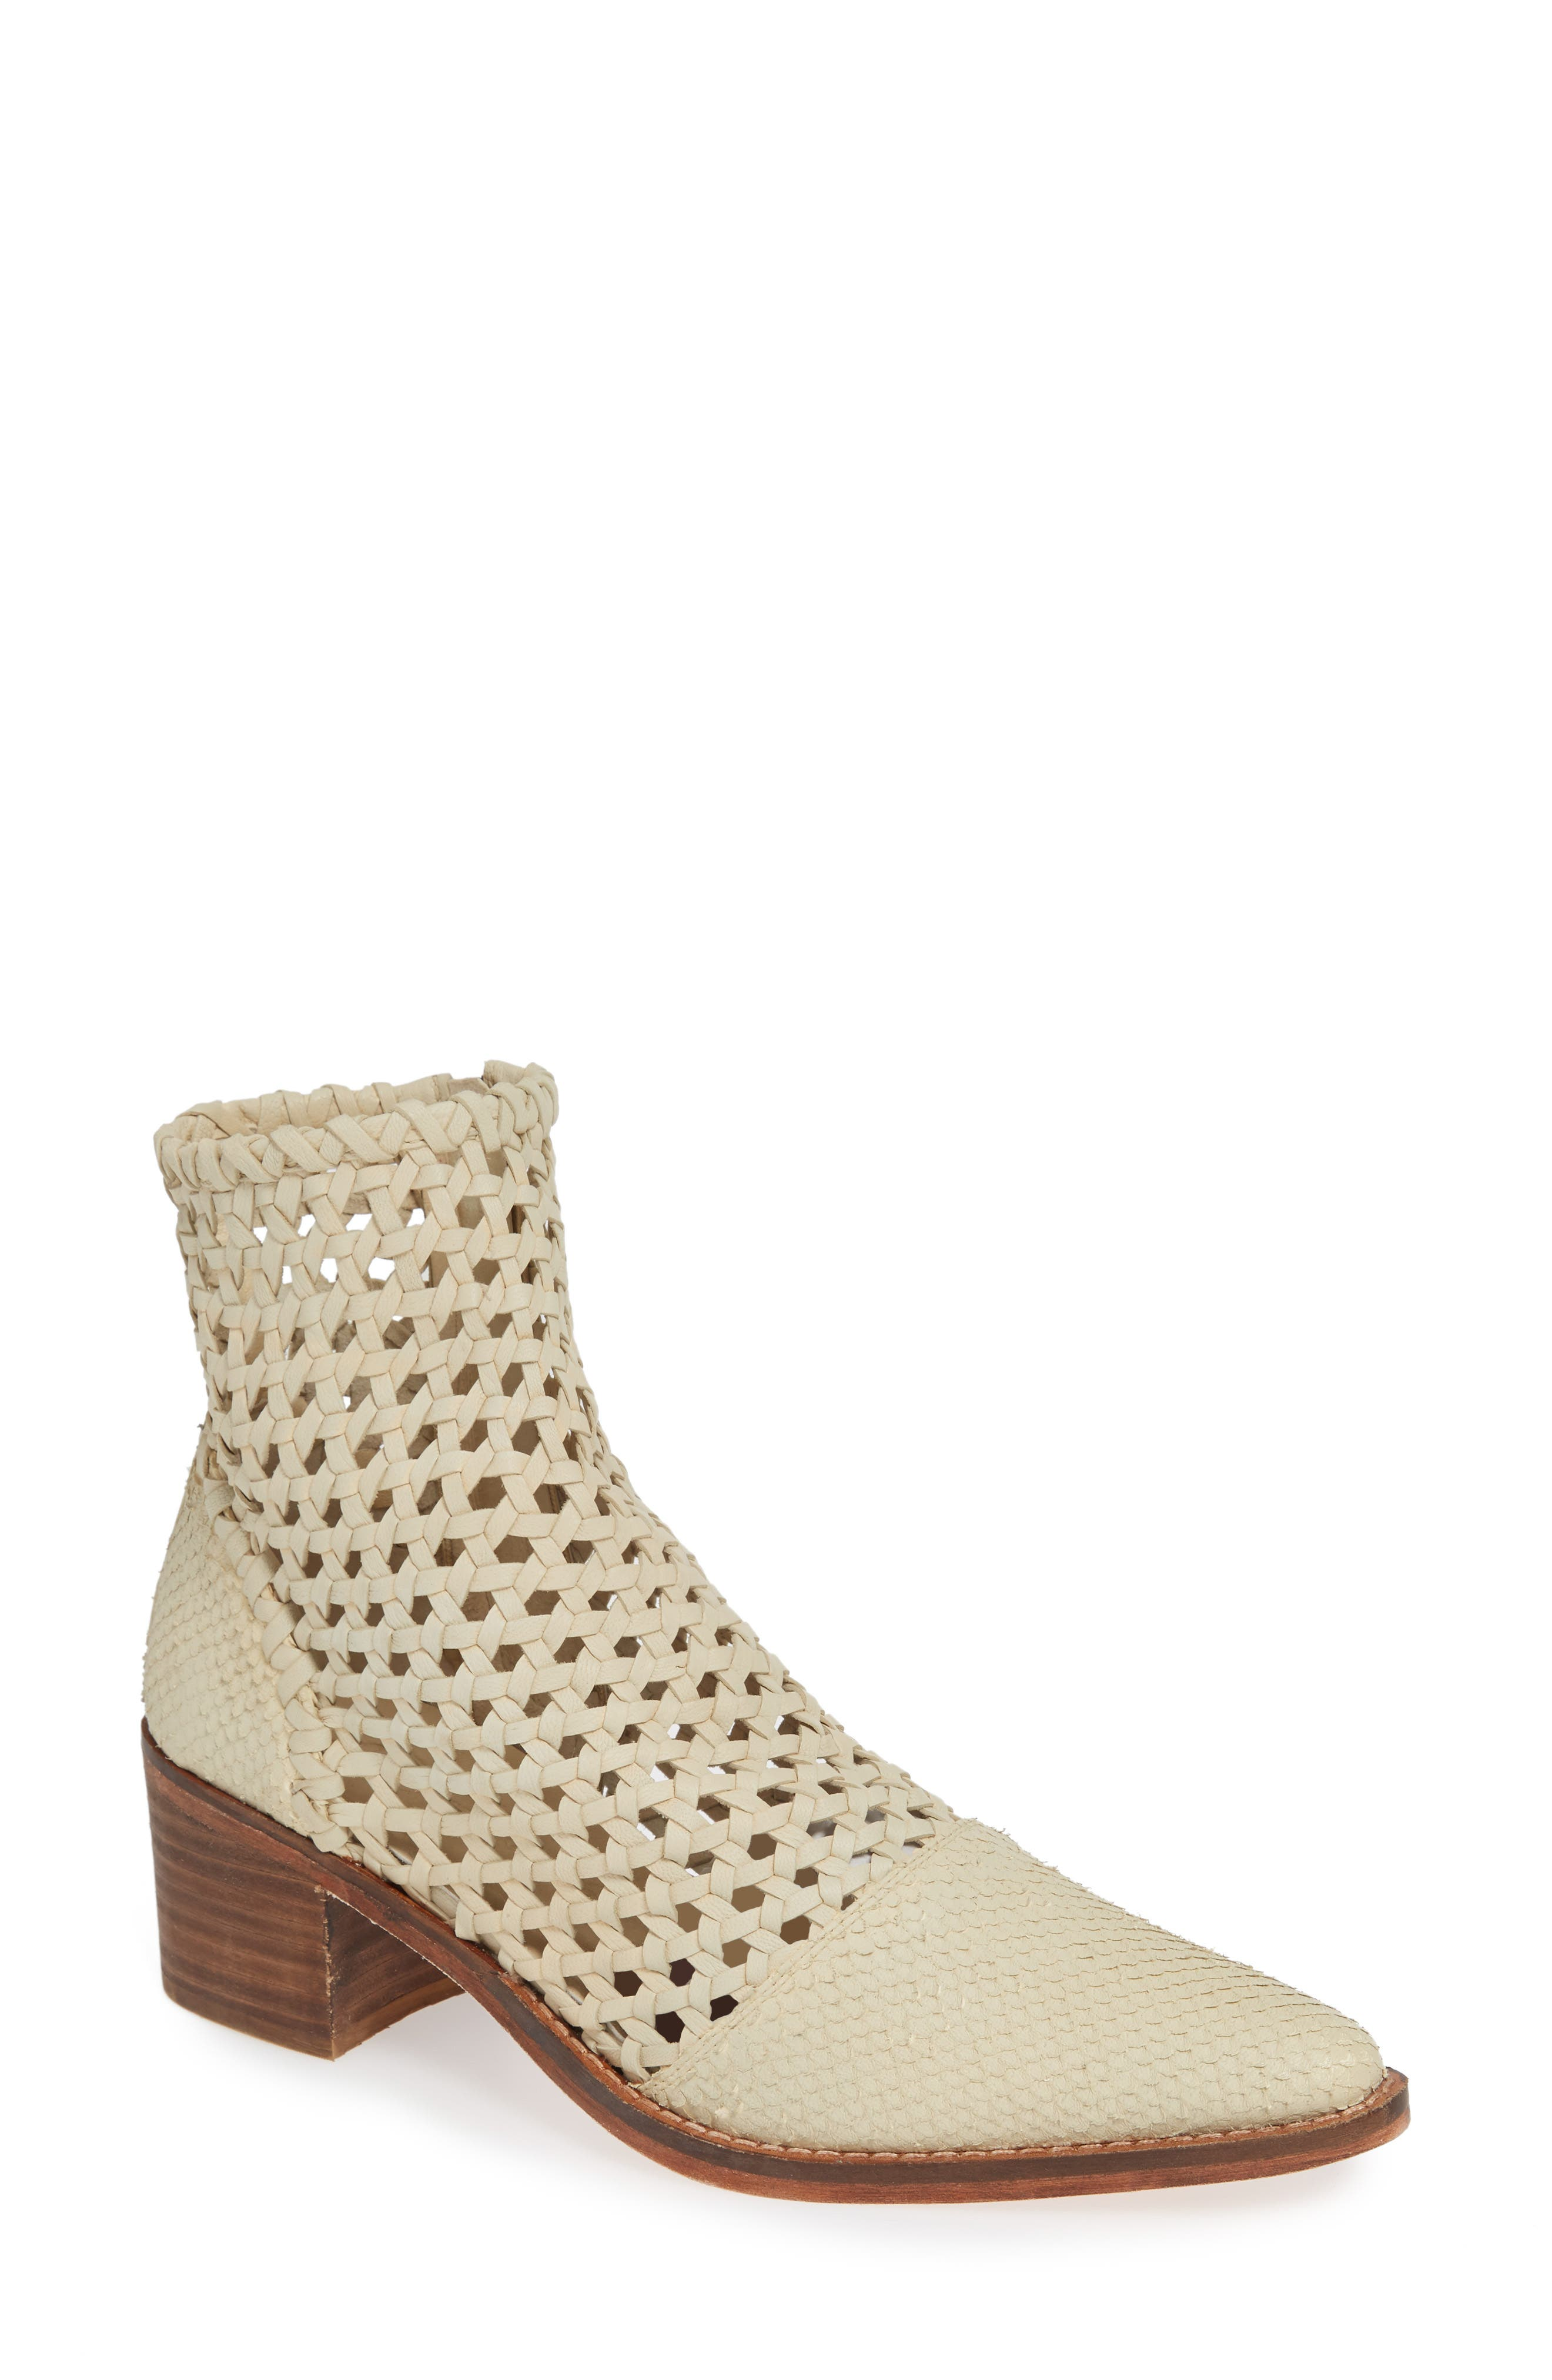 Free People In The Loop Woven Bootie, White